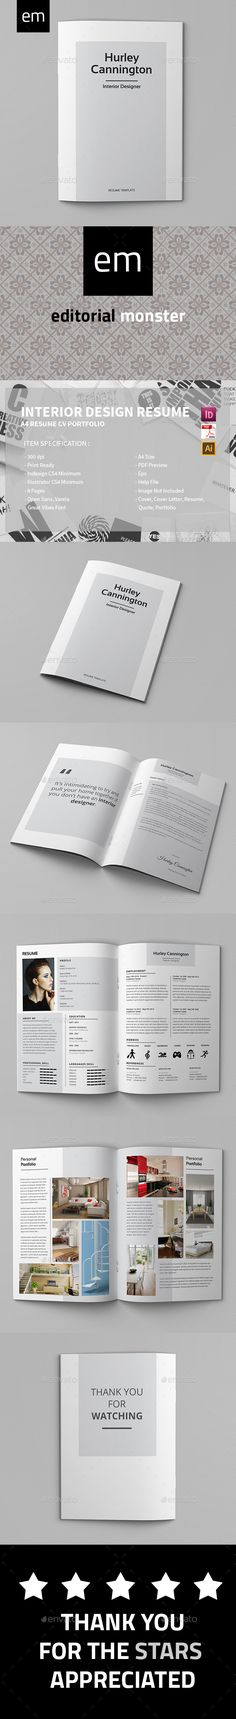 Claire Callis \/\/ Interior Design Resume Design Pinterest - interior design resume